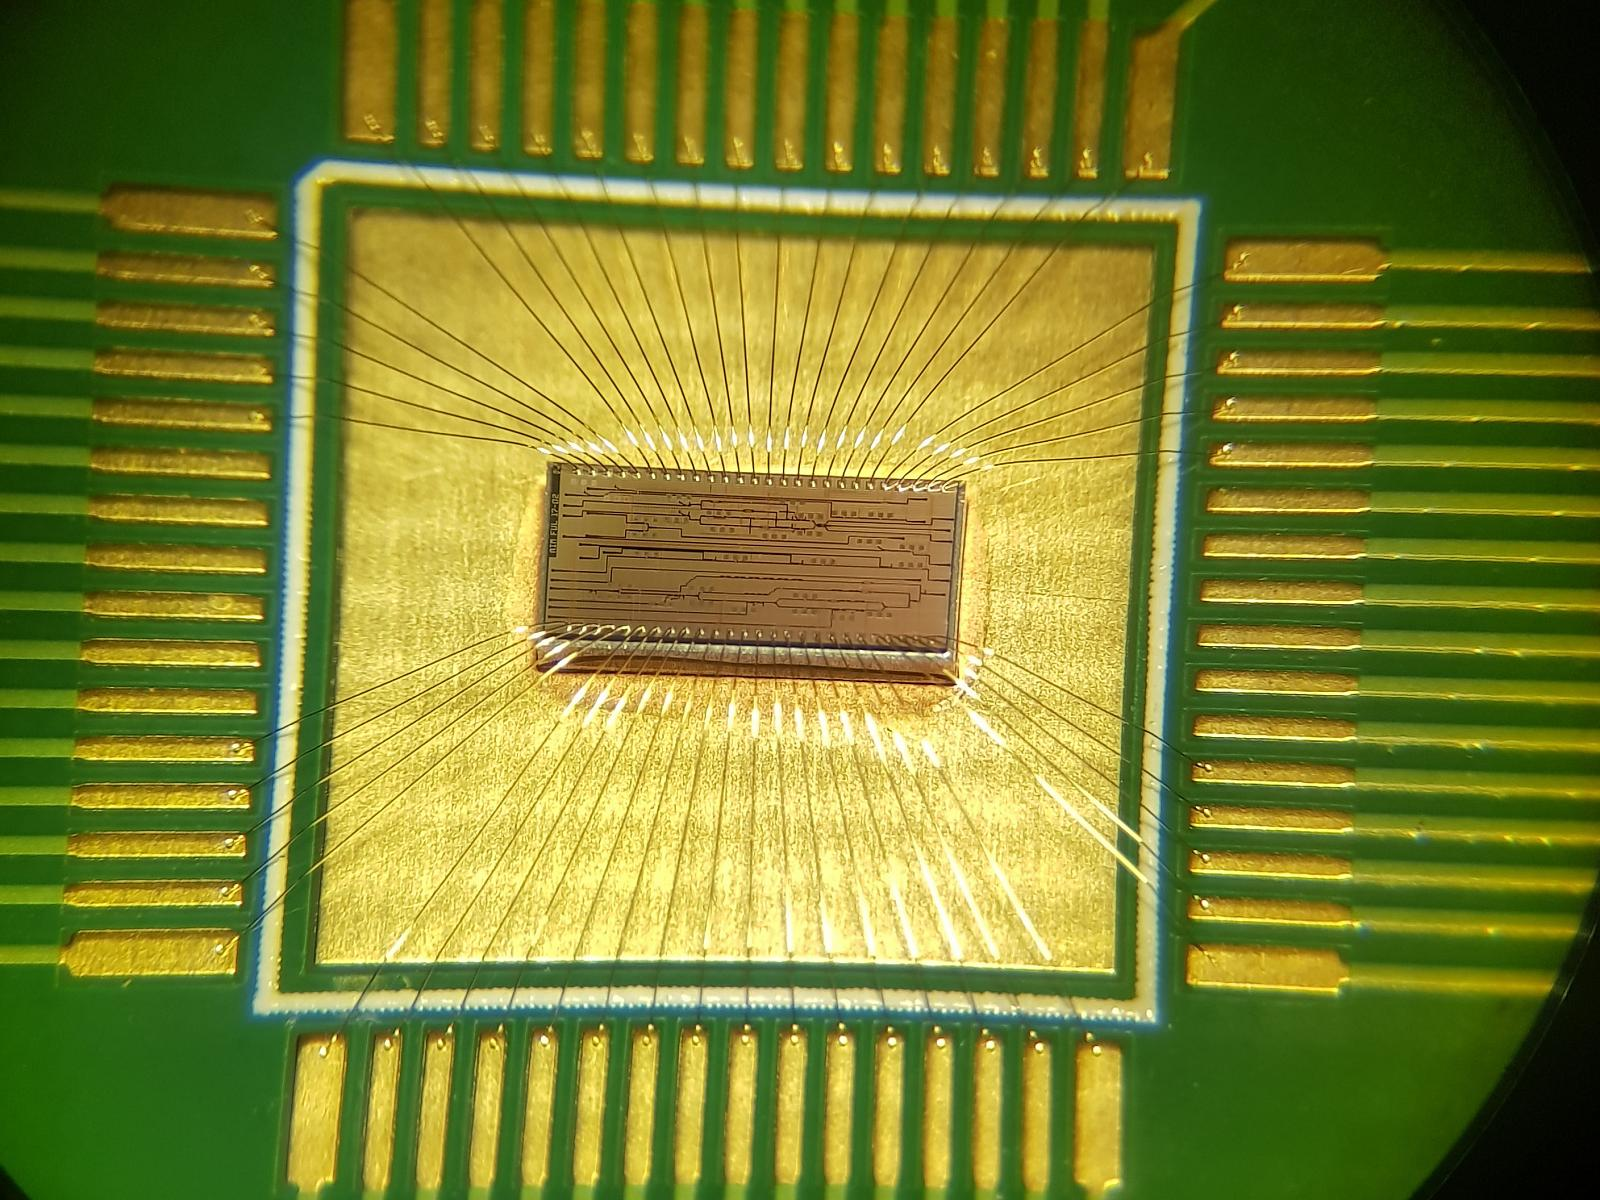 silicon chip arithmetic logic unit